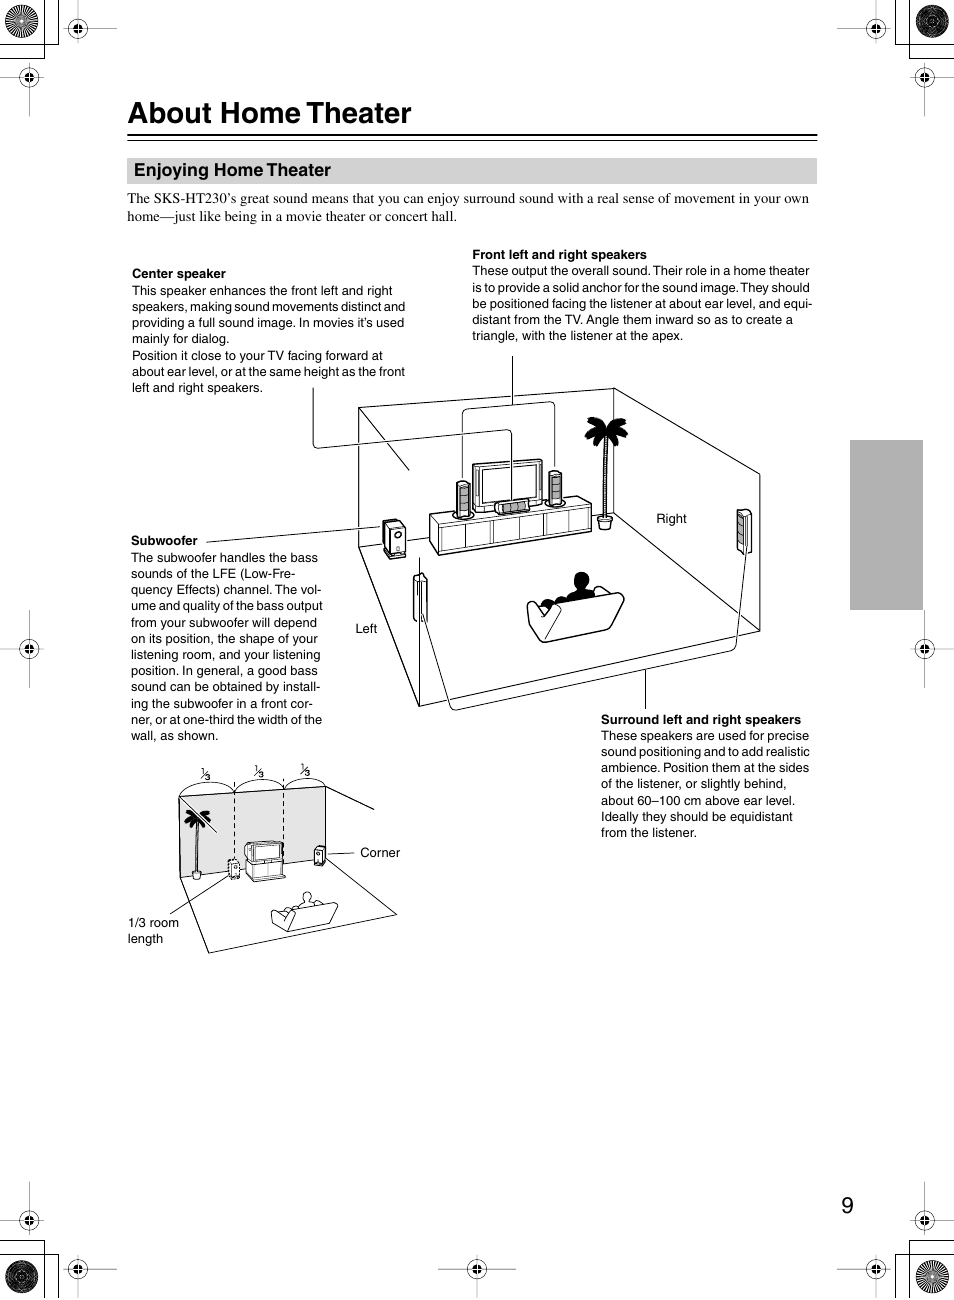 about home theater onkyo skw 150x user manual page 9 12 rh manualsdir com Home Theater Design Tools Home Theater Seats